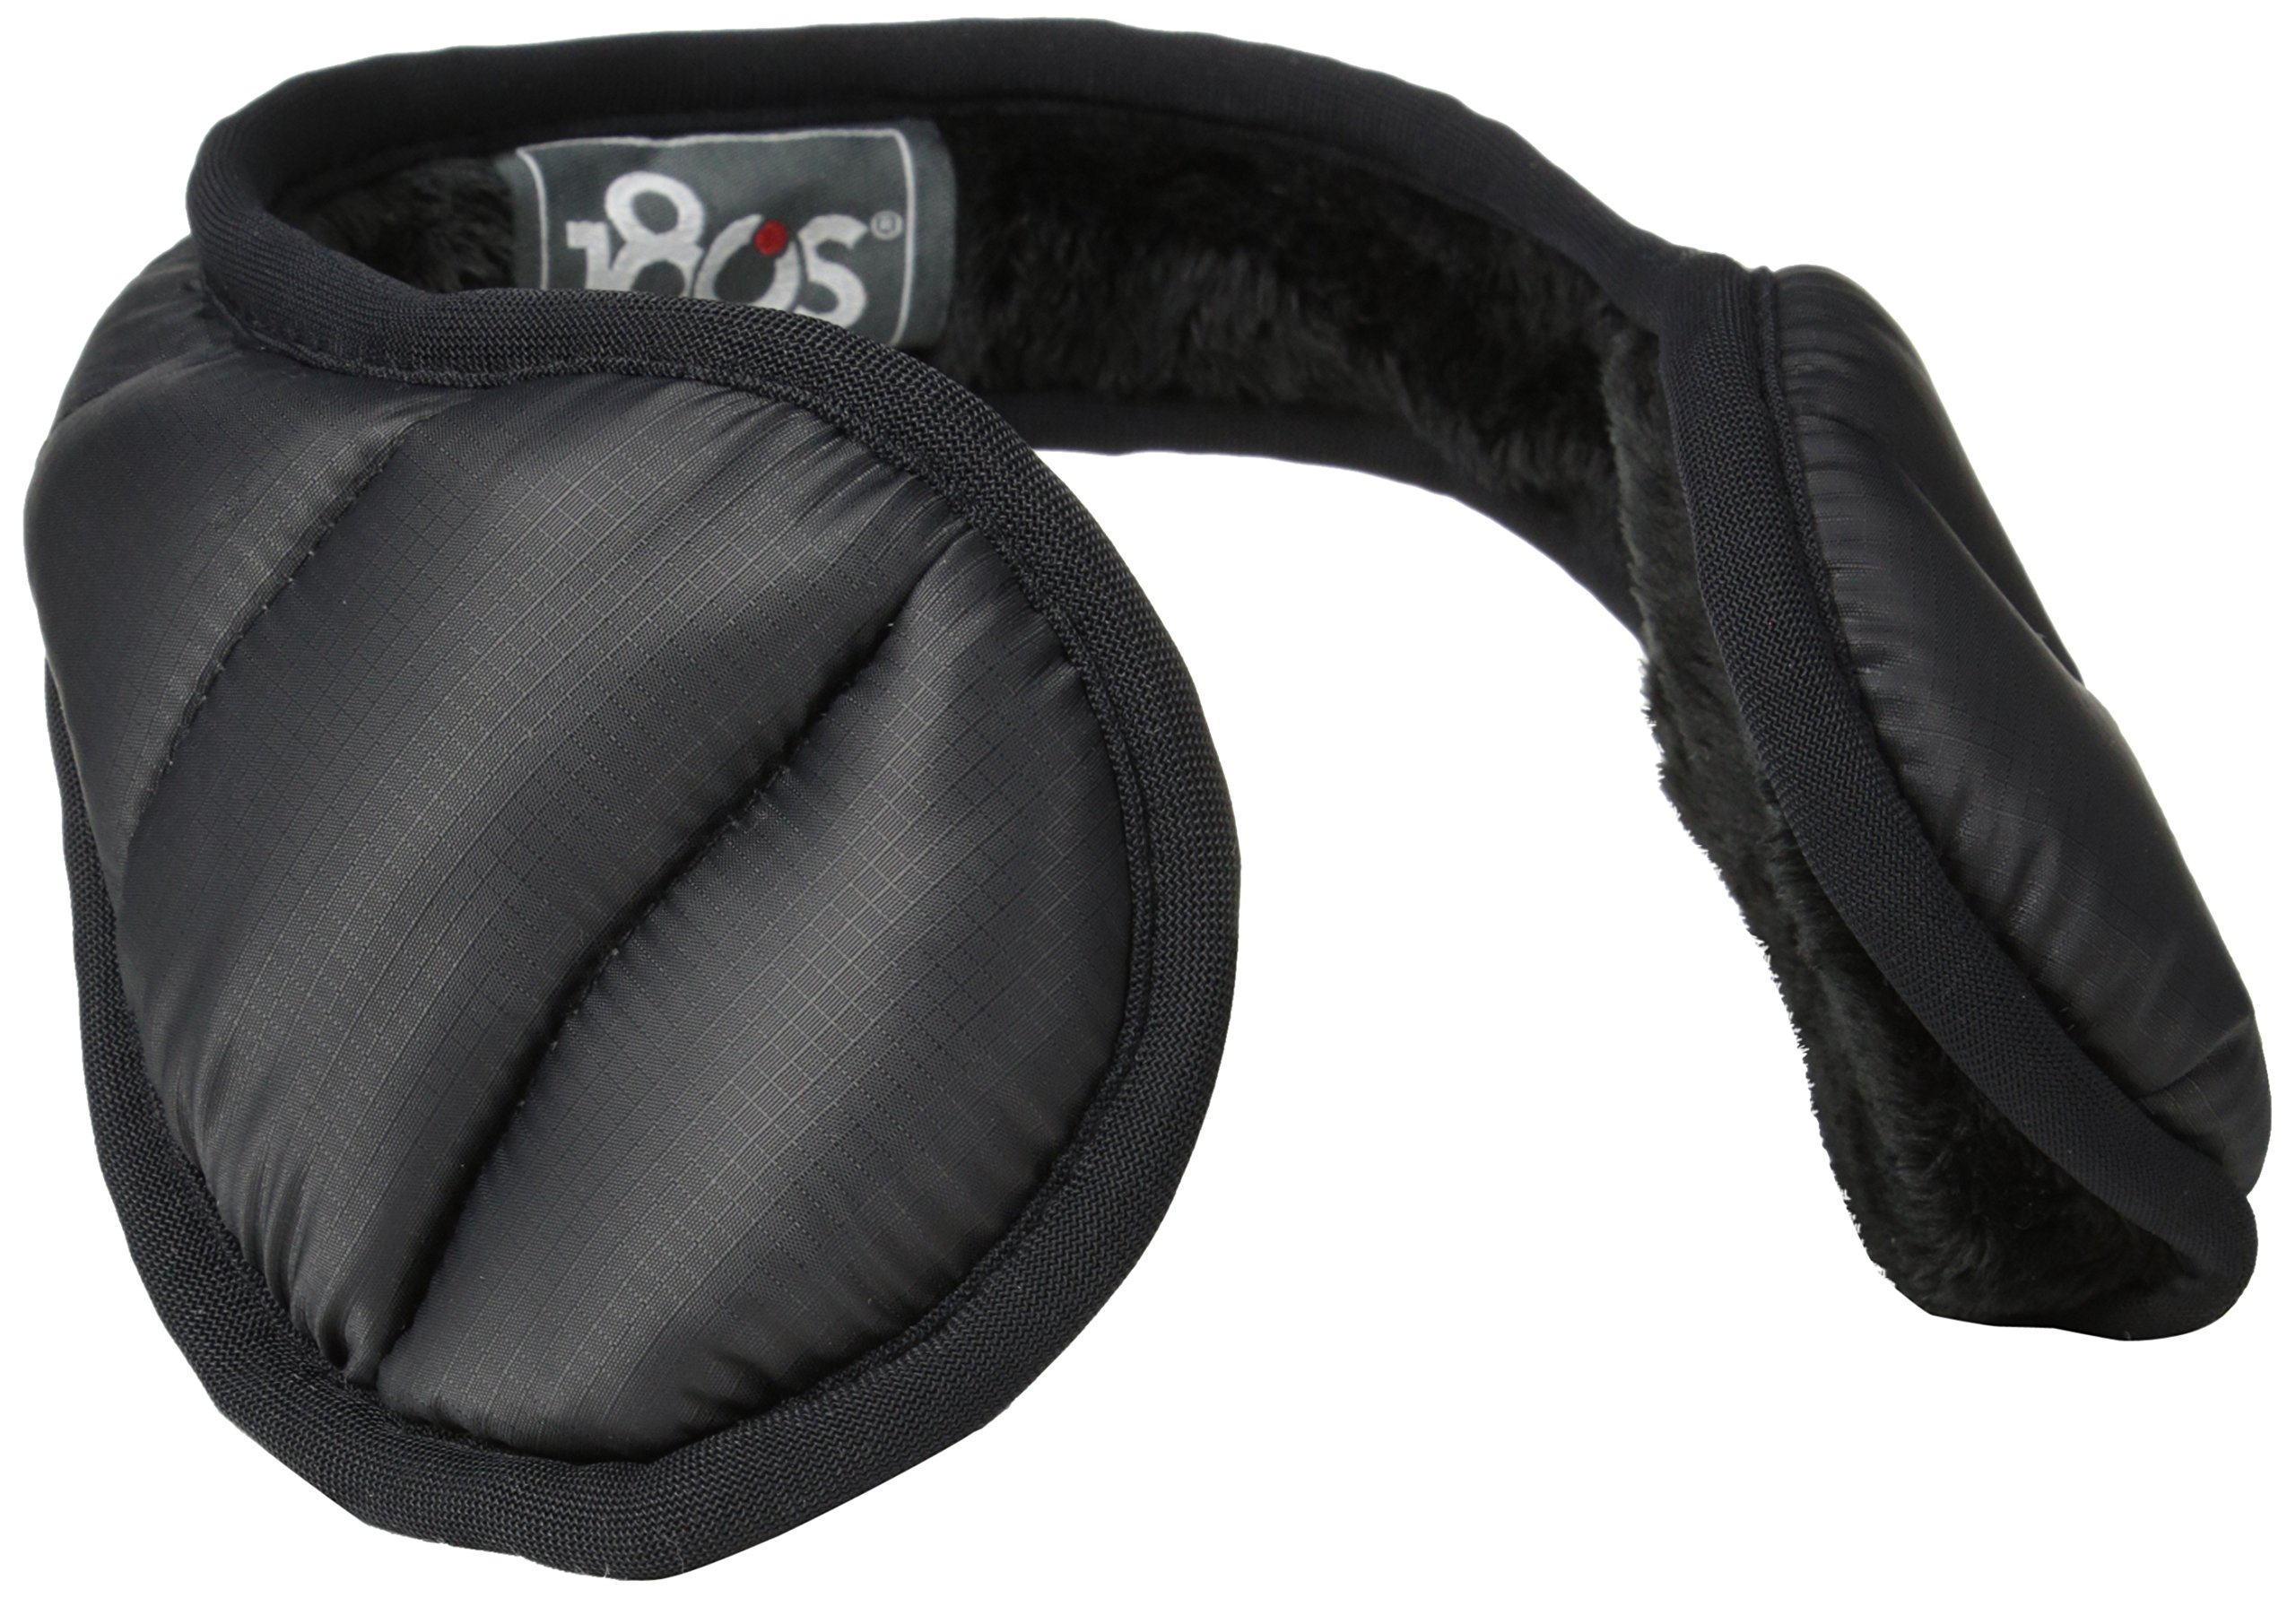 180s Women's Down Water Resistant Behind the Head Ear Warmers, Black, One Size